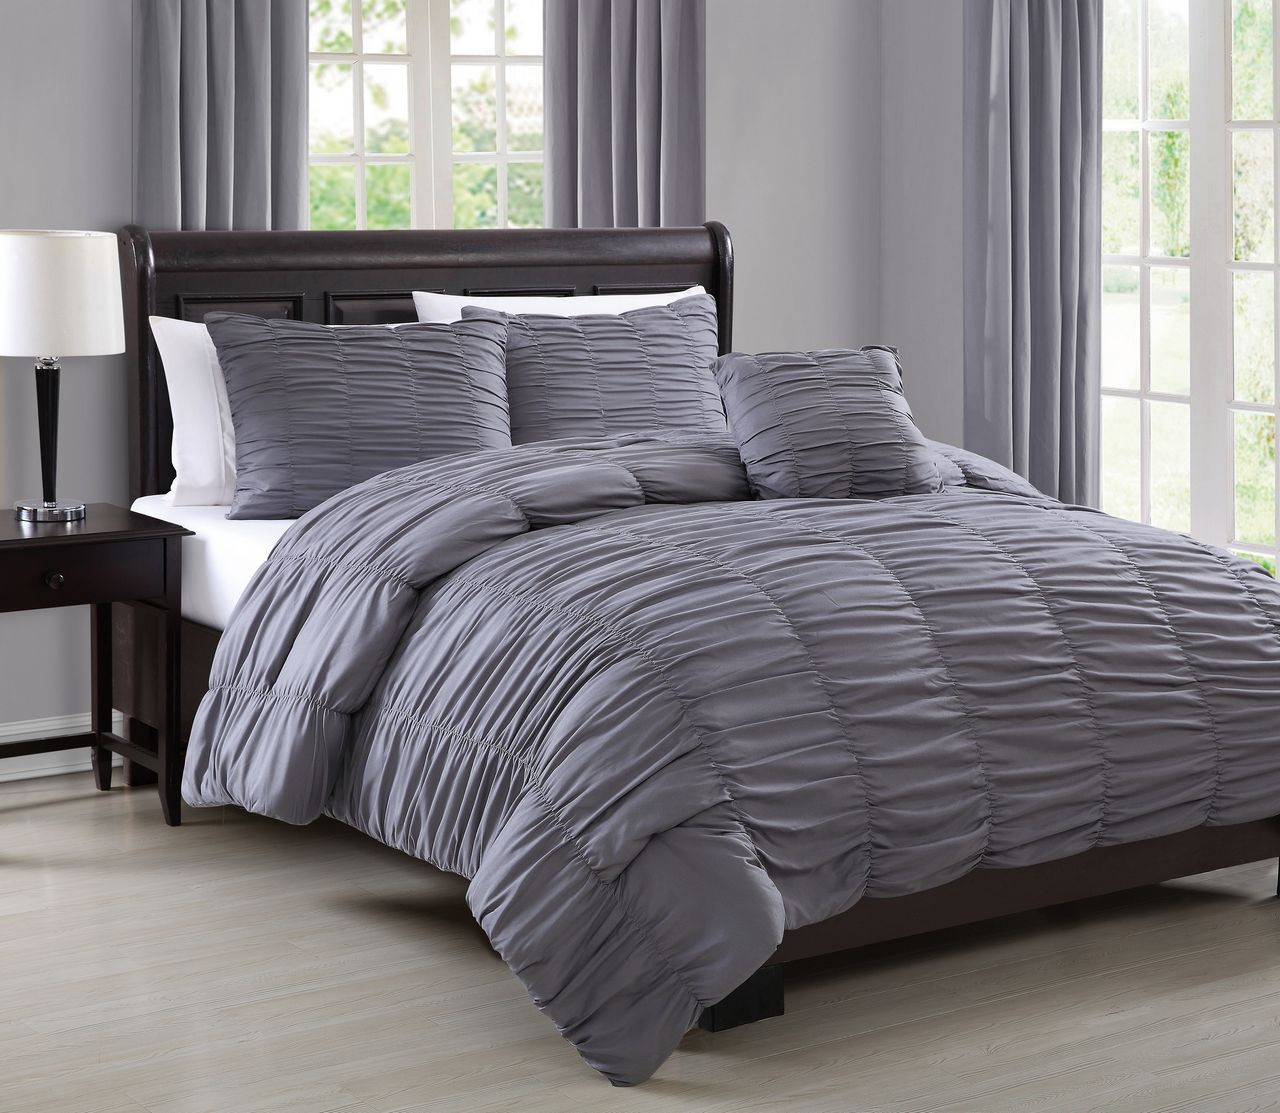 twin ding comforter long at bedspreads size dormify bedding queen full sale dorm kohls xl extra s quilts